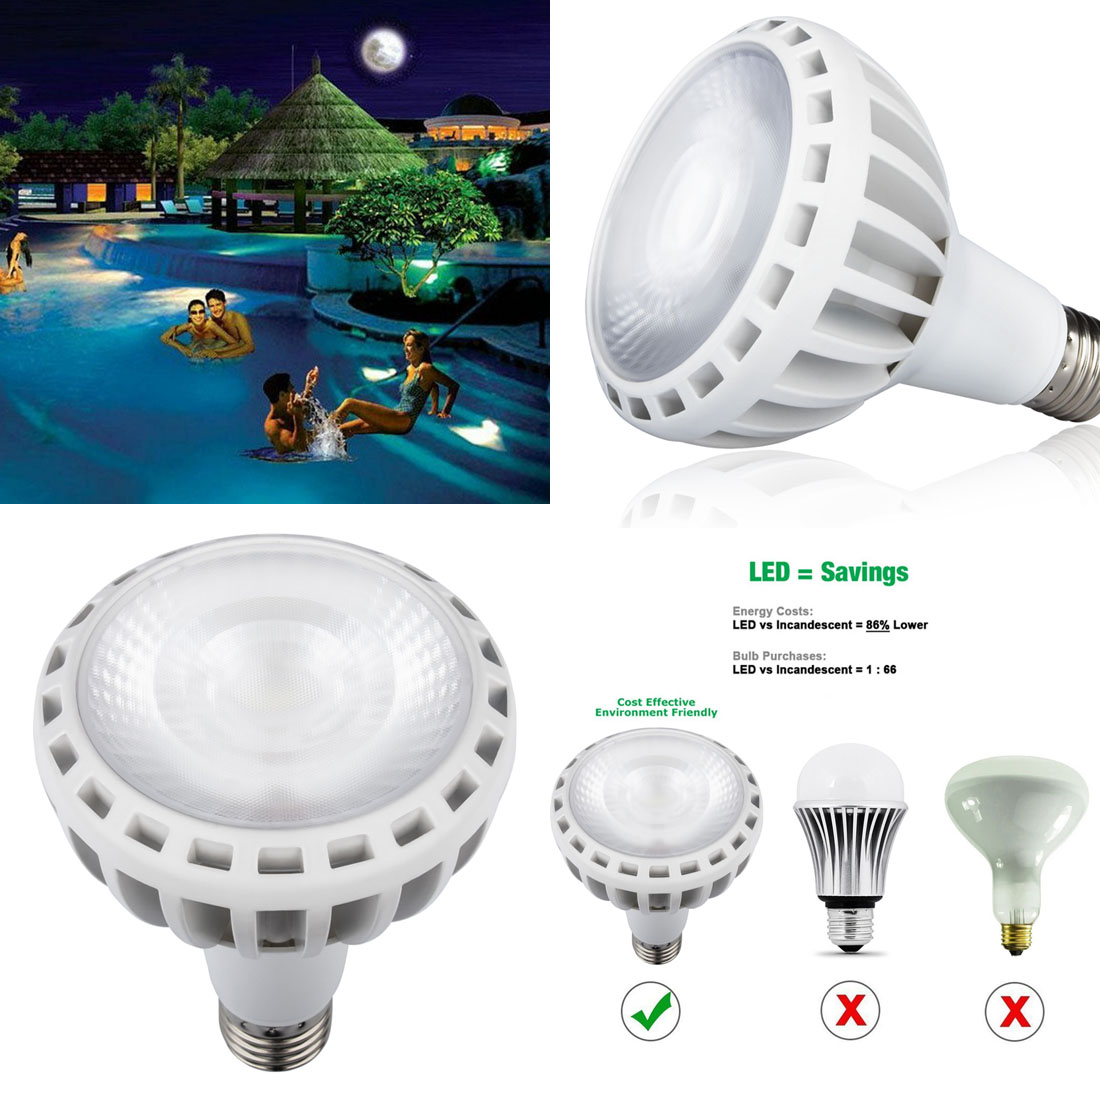 Details about COB Technology 120V 45W Underwater In Ground Spa Swimming  Pool LED Light Bulb #y